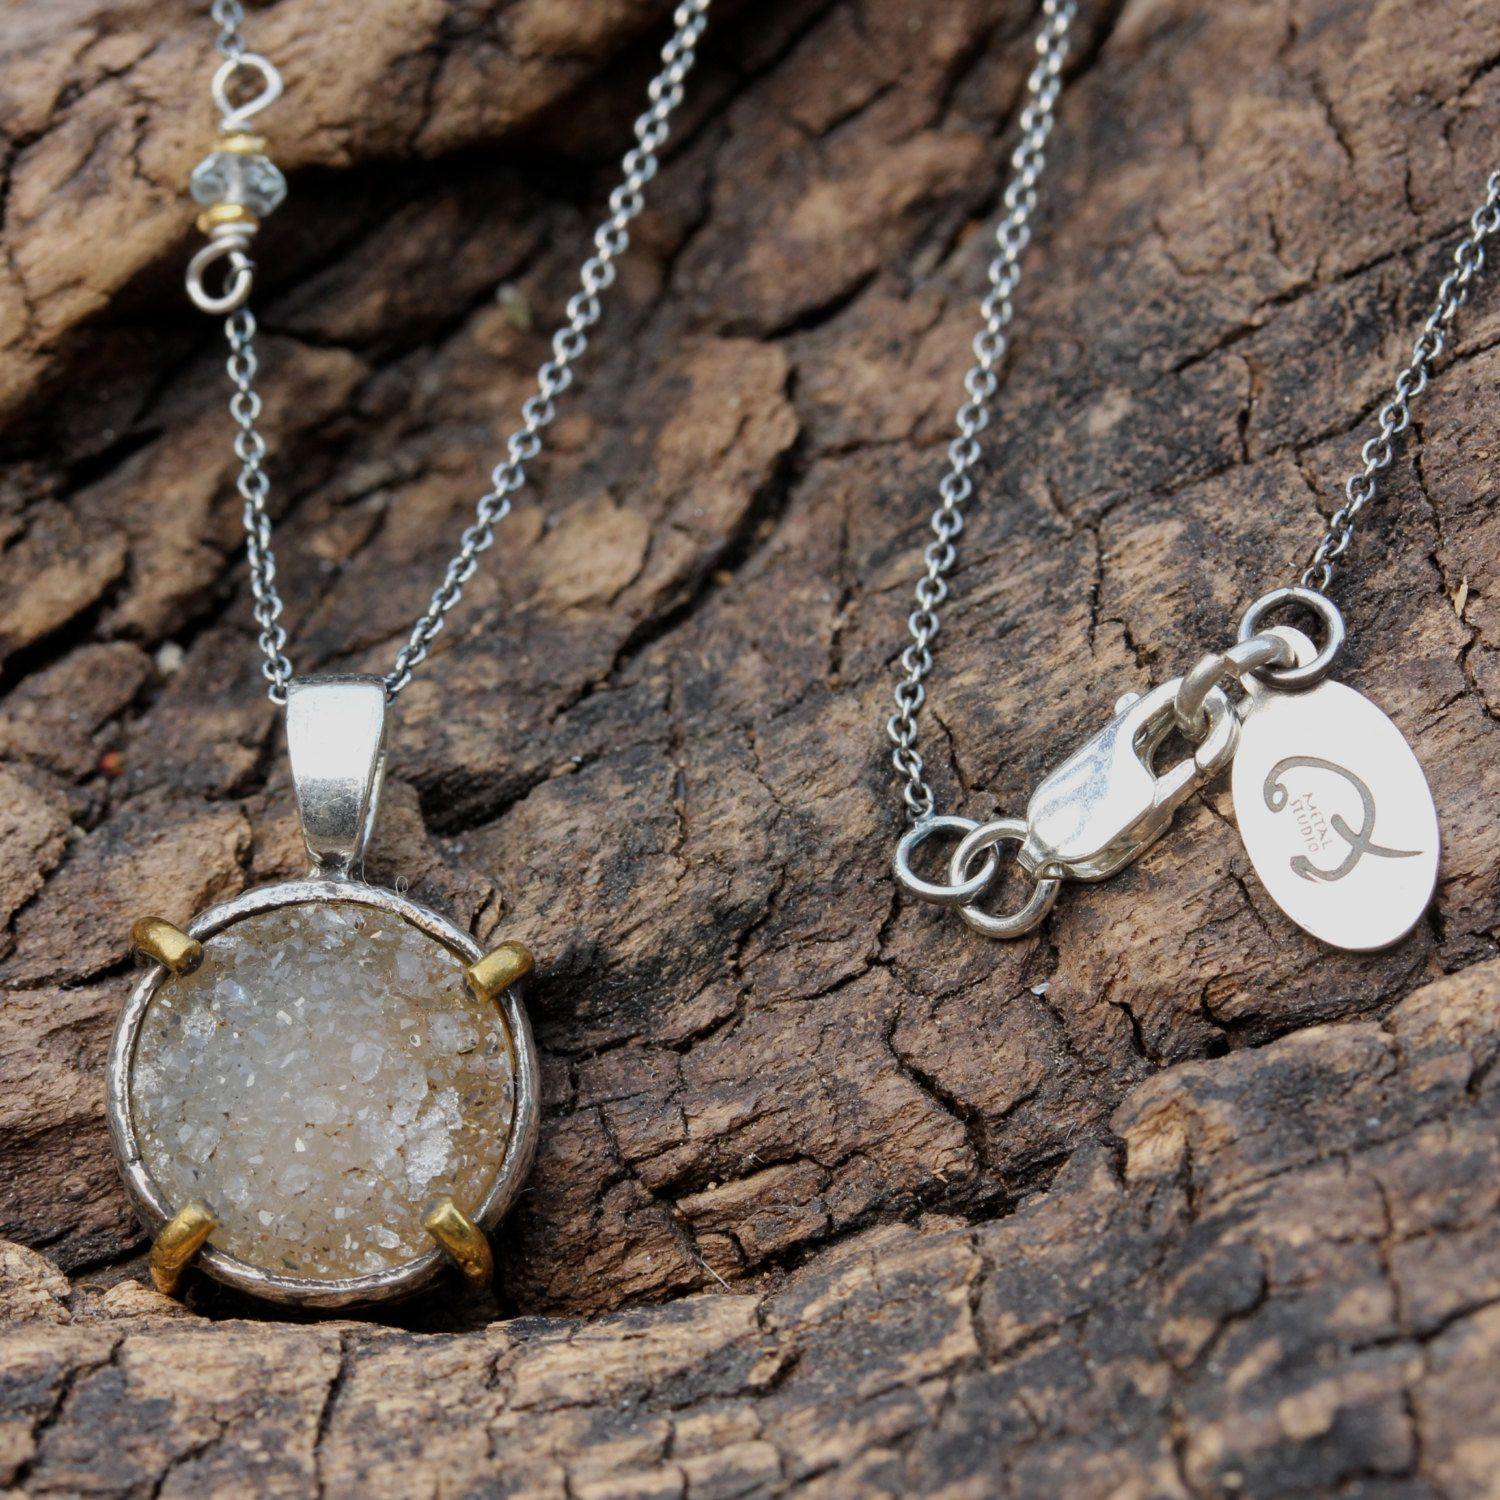 Round druzy pendant necklace with aquamarine side set gemstone and fine link silver chain